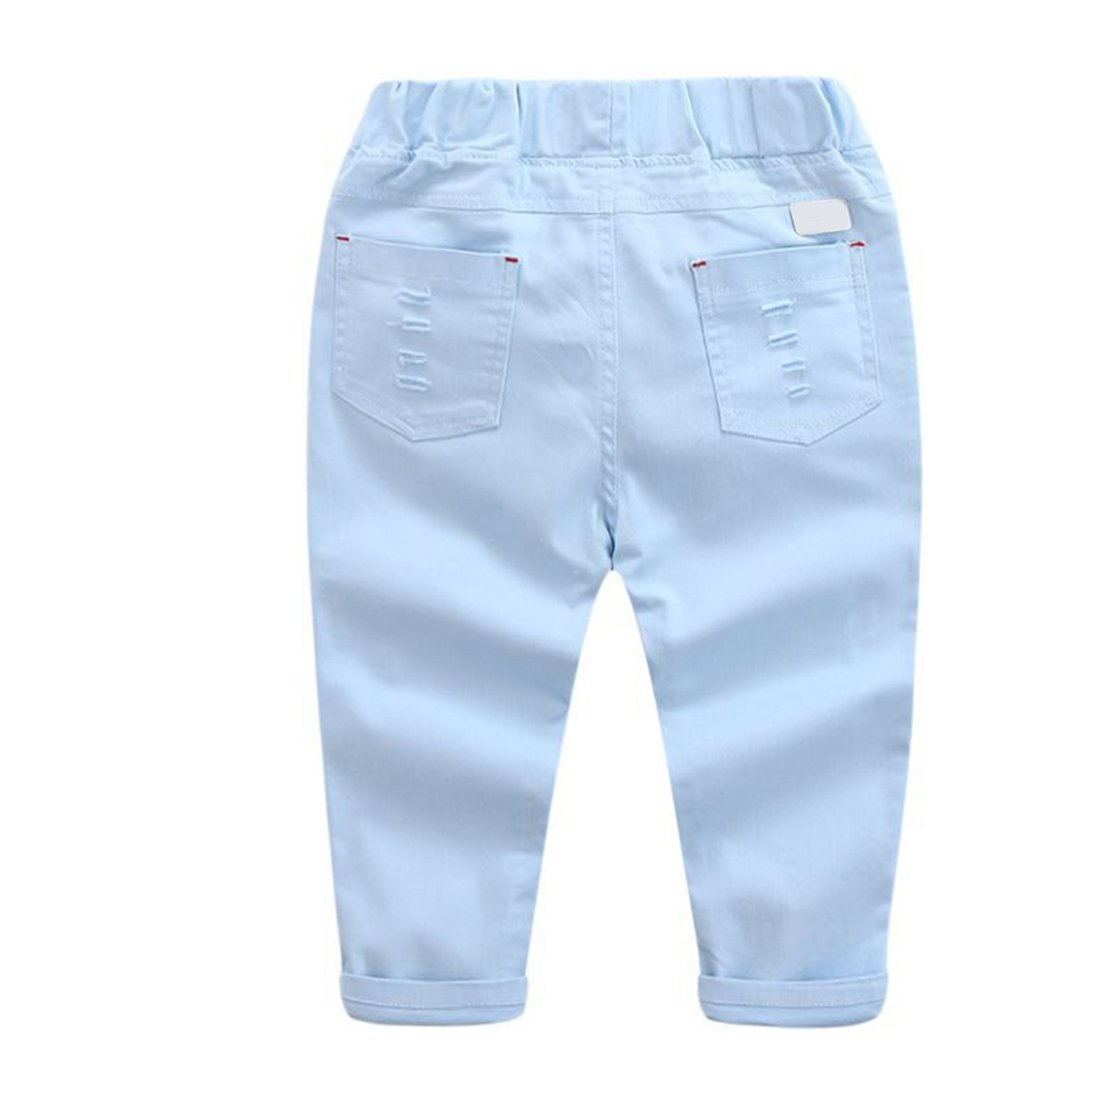 daqinghjxg 2018 Toddler Boys Pants Baby Boys Casual Loose Trousers Solid Long Pants